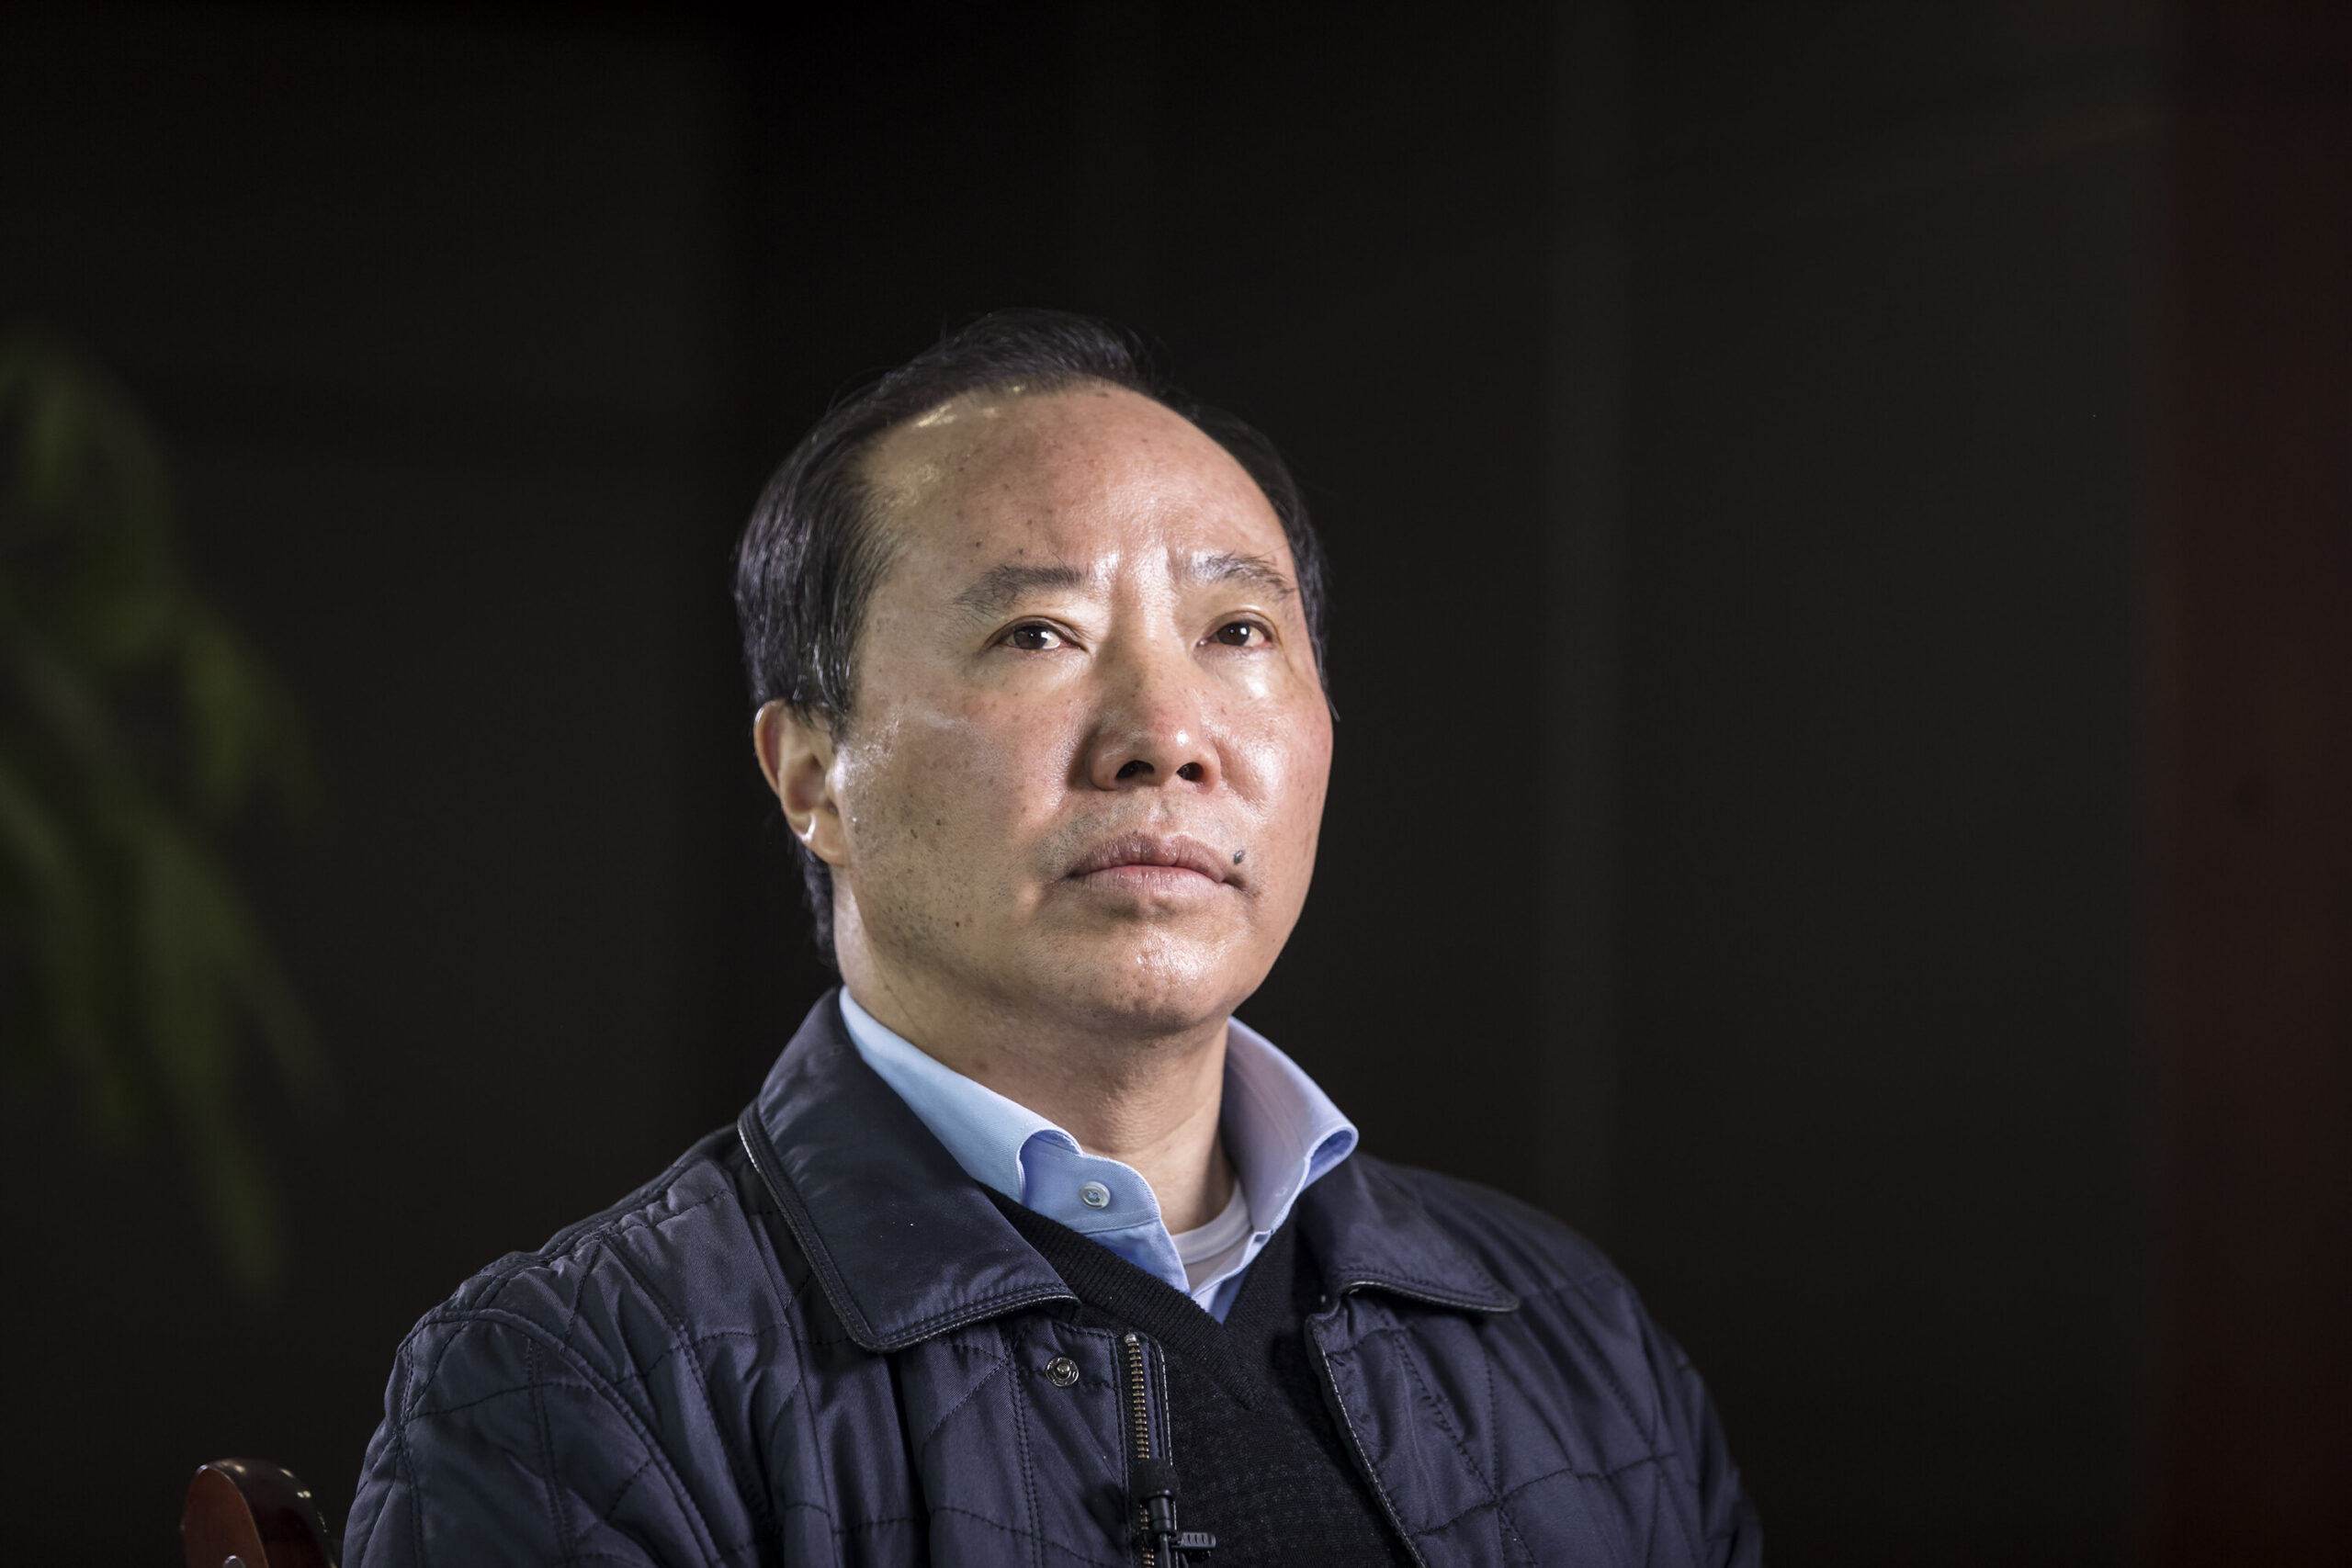 <i>Qilai Shen/Bloomberg/Getty Images</i><br/>Yuan Renguo is the former chairman of Kweichow Moutai.